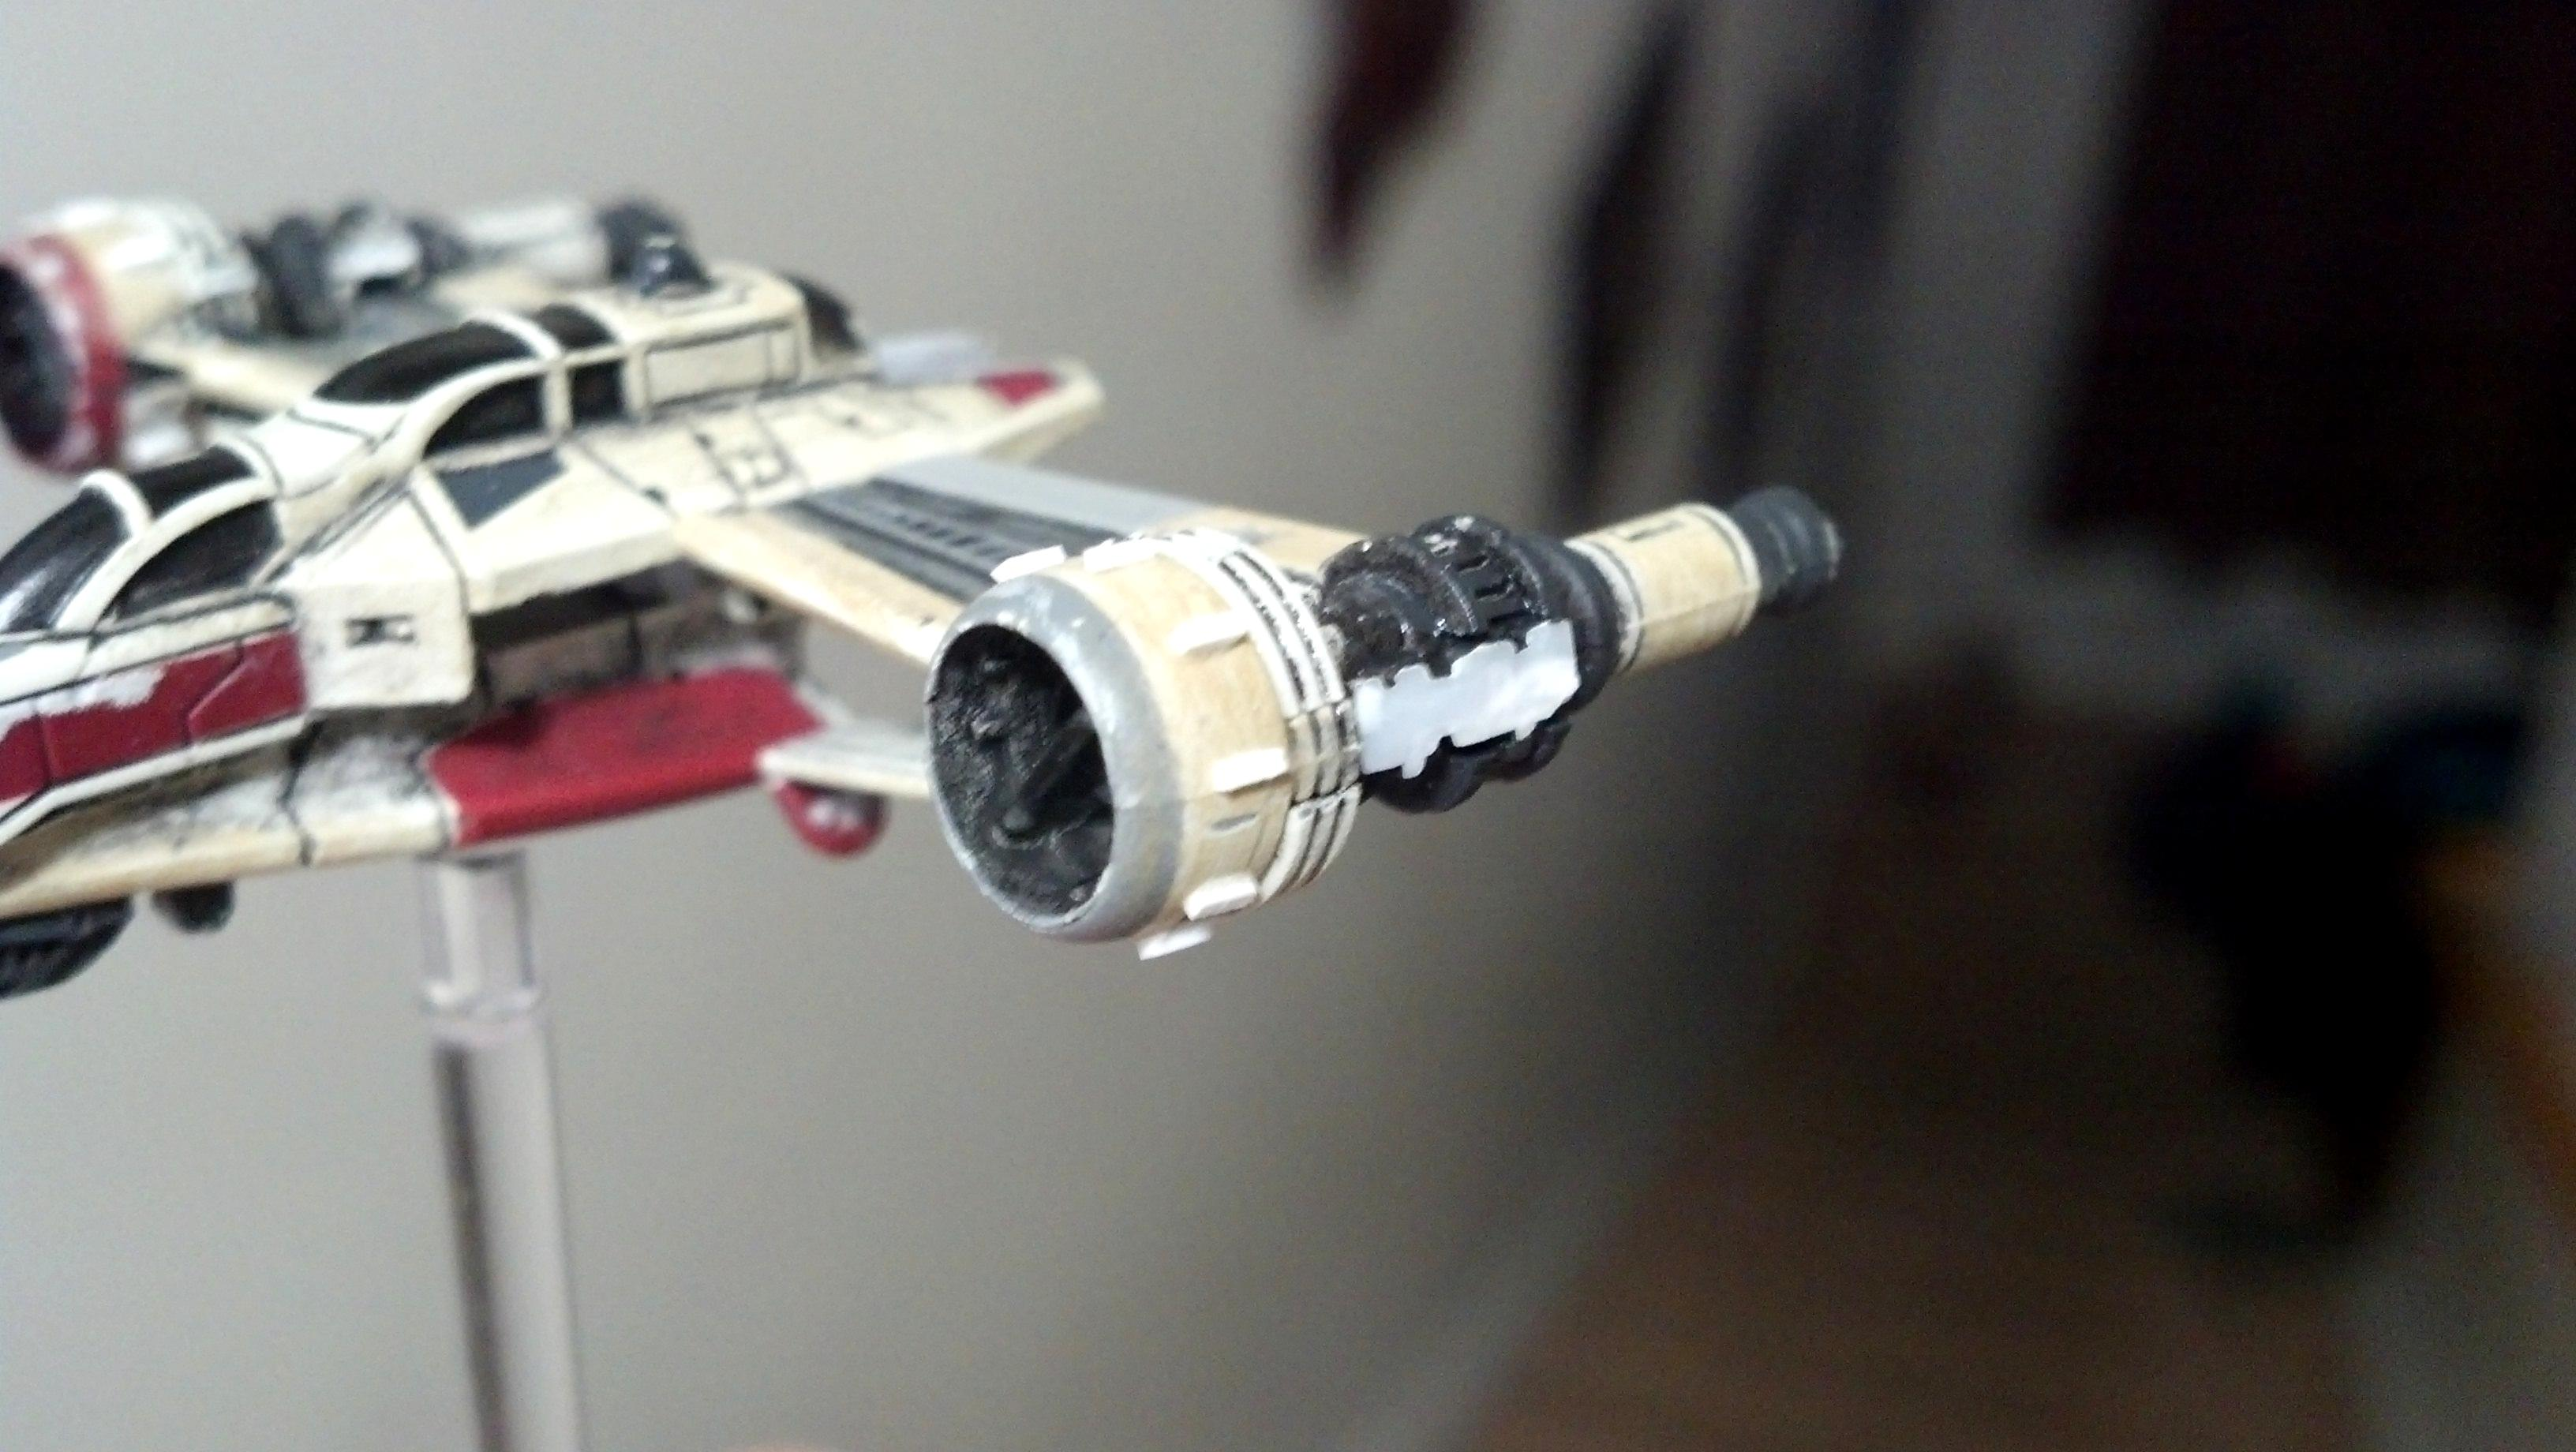 1/270, 170, 1:270, Arc, Arc-170, Modification, Repaint, Star Wars, X-wing Miniature Game